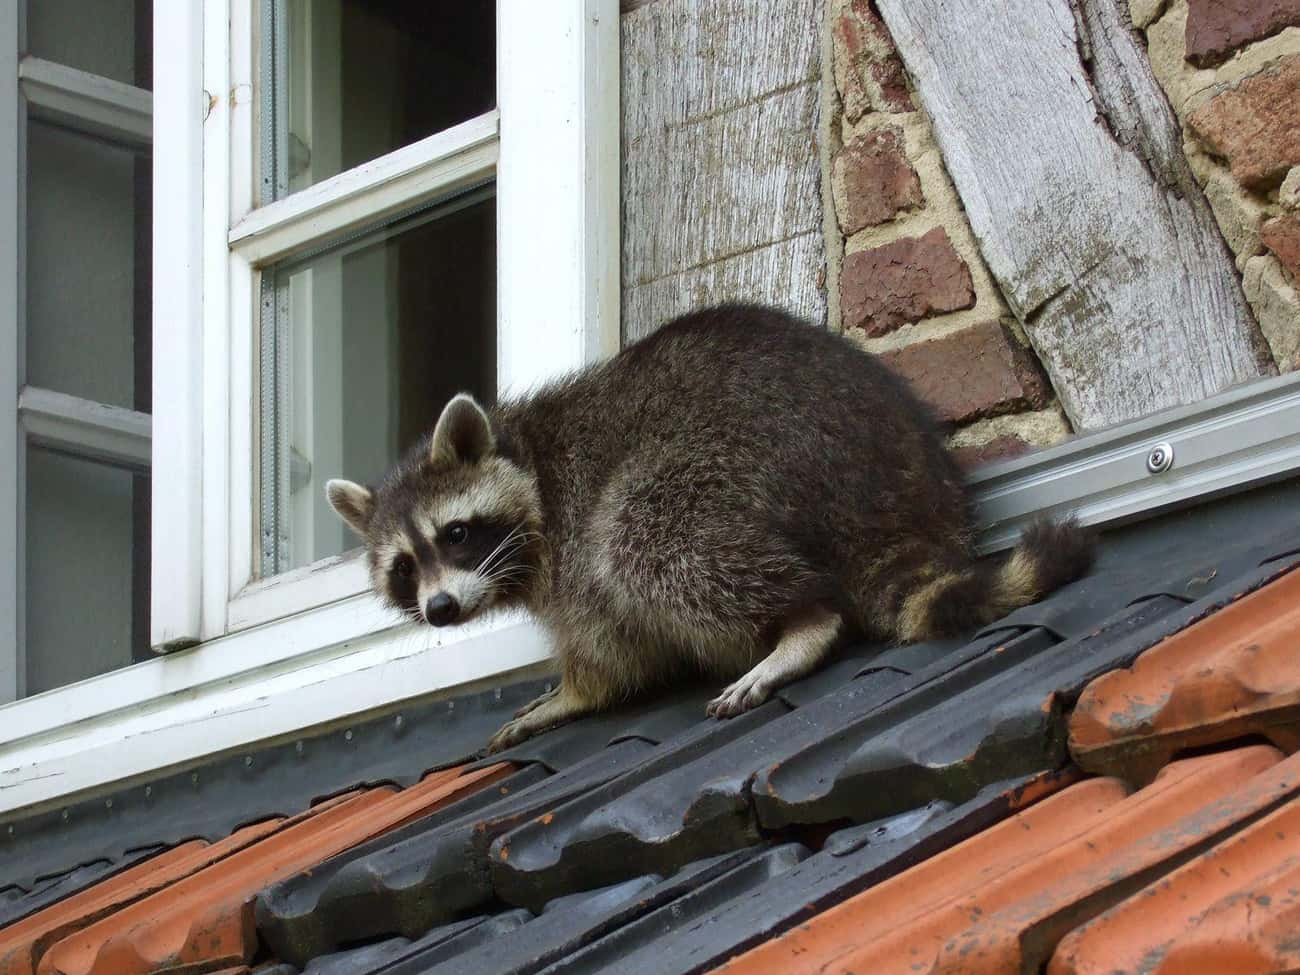 Raccoons is listed (or ranked) 3 on the list 13 Animals That Have Adapted To Thrive In Cities